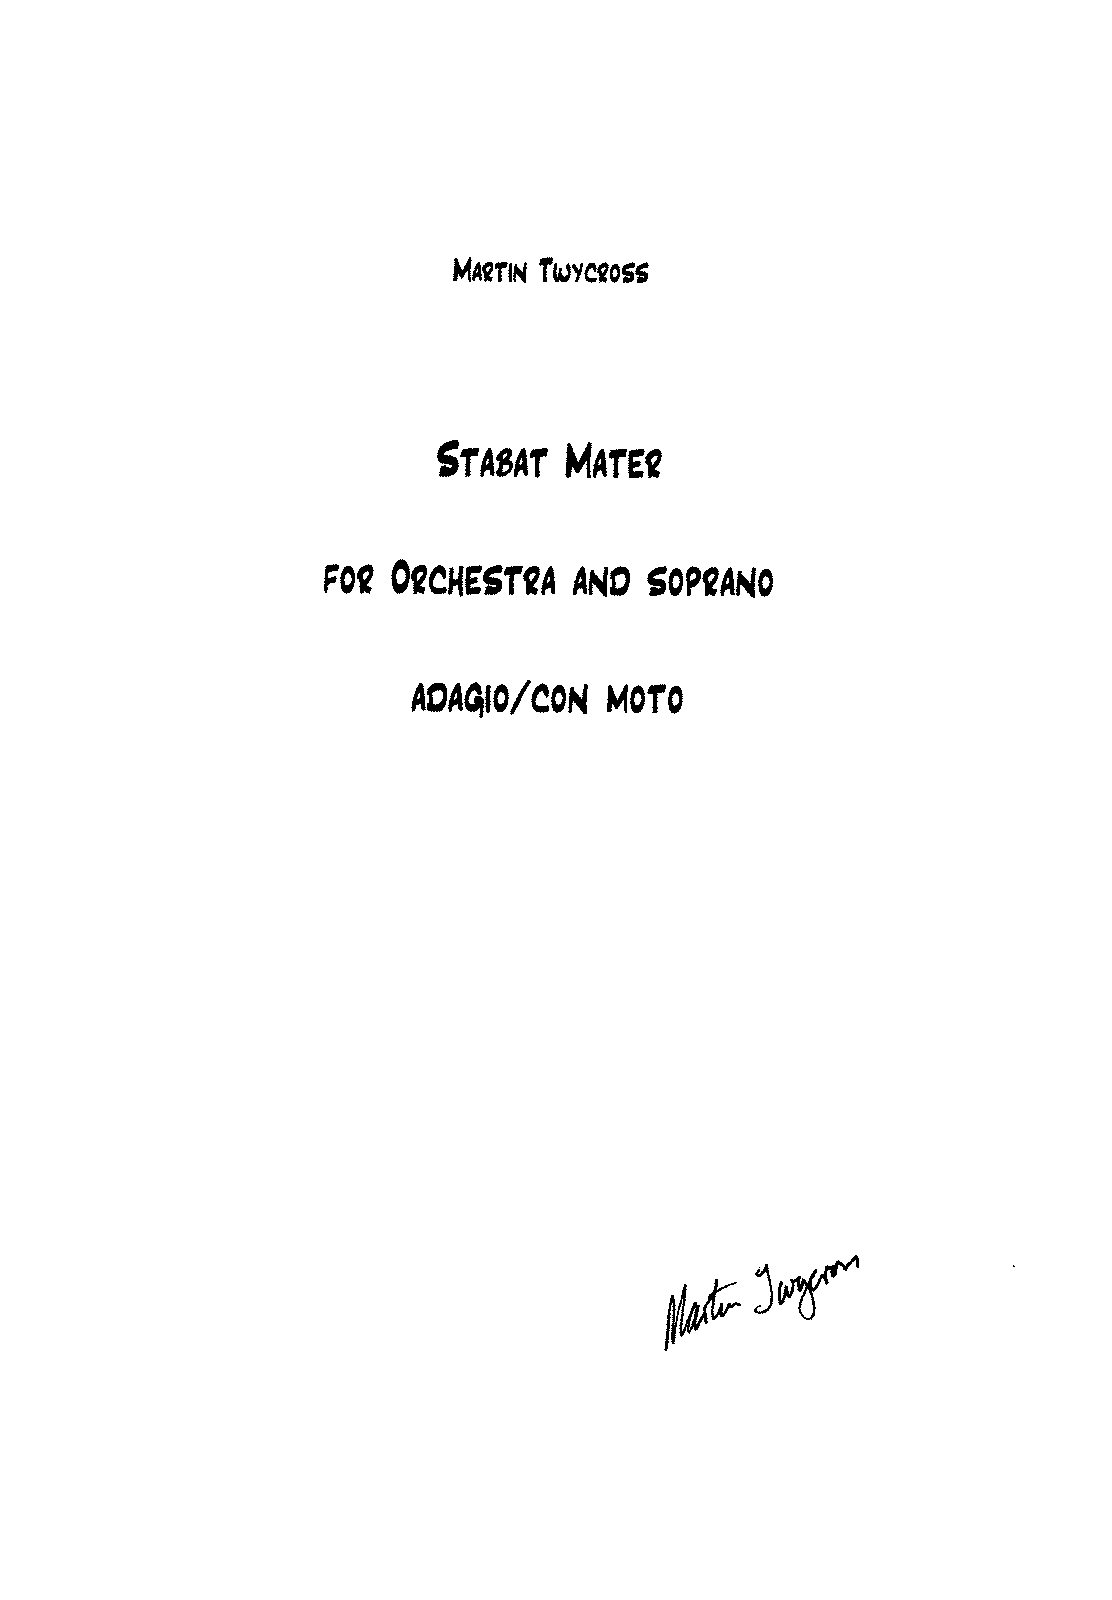 PMLP316236-stabat mater (complete study score).pdf